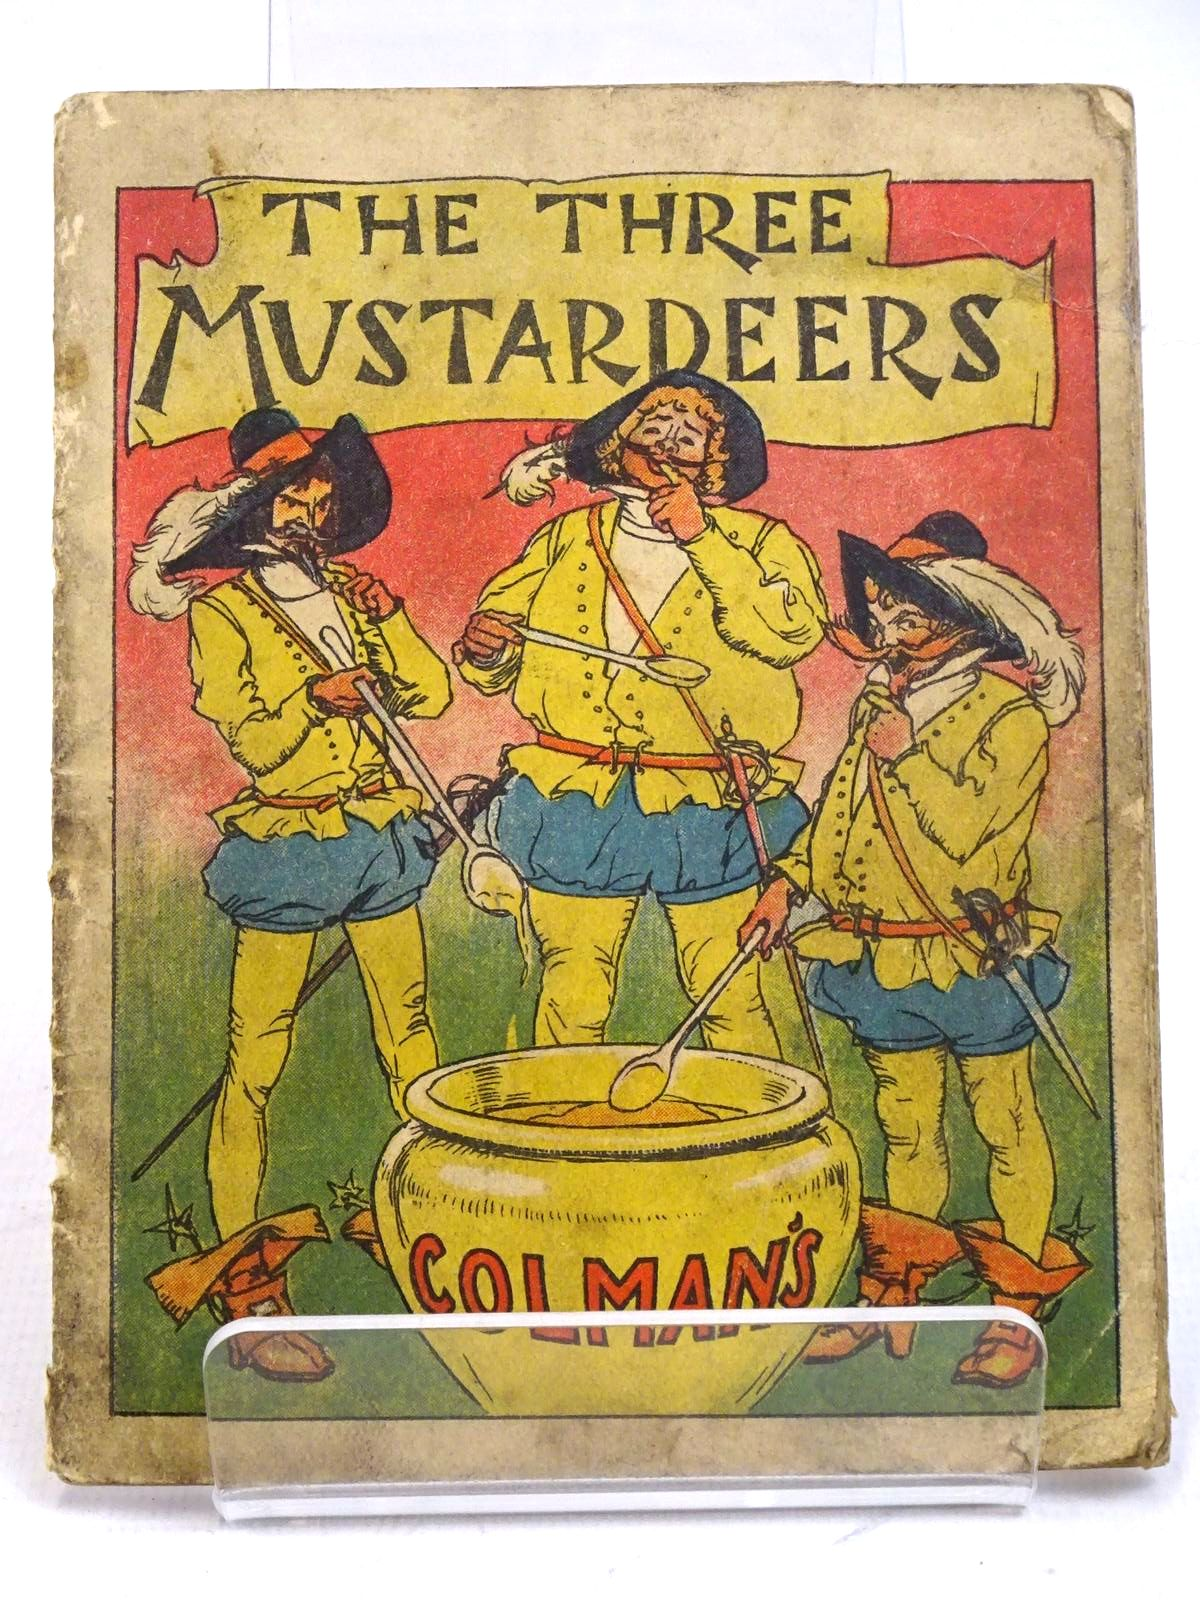 Photo of THE THREE MUSTARDEERS published by Colmans Foods (STOCK CODE: 1317958)  for sale by Stella & Rose's Books